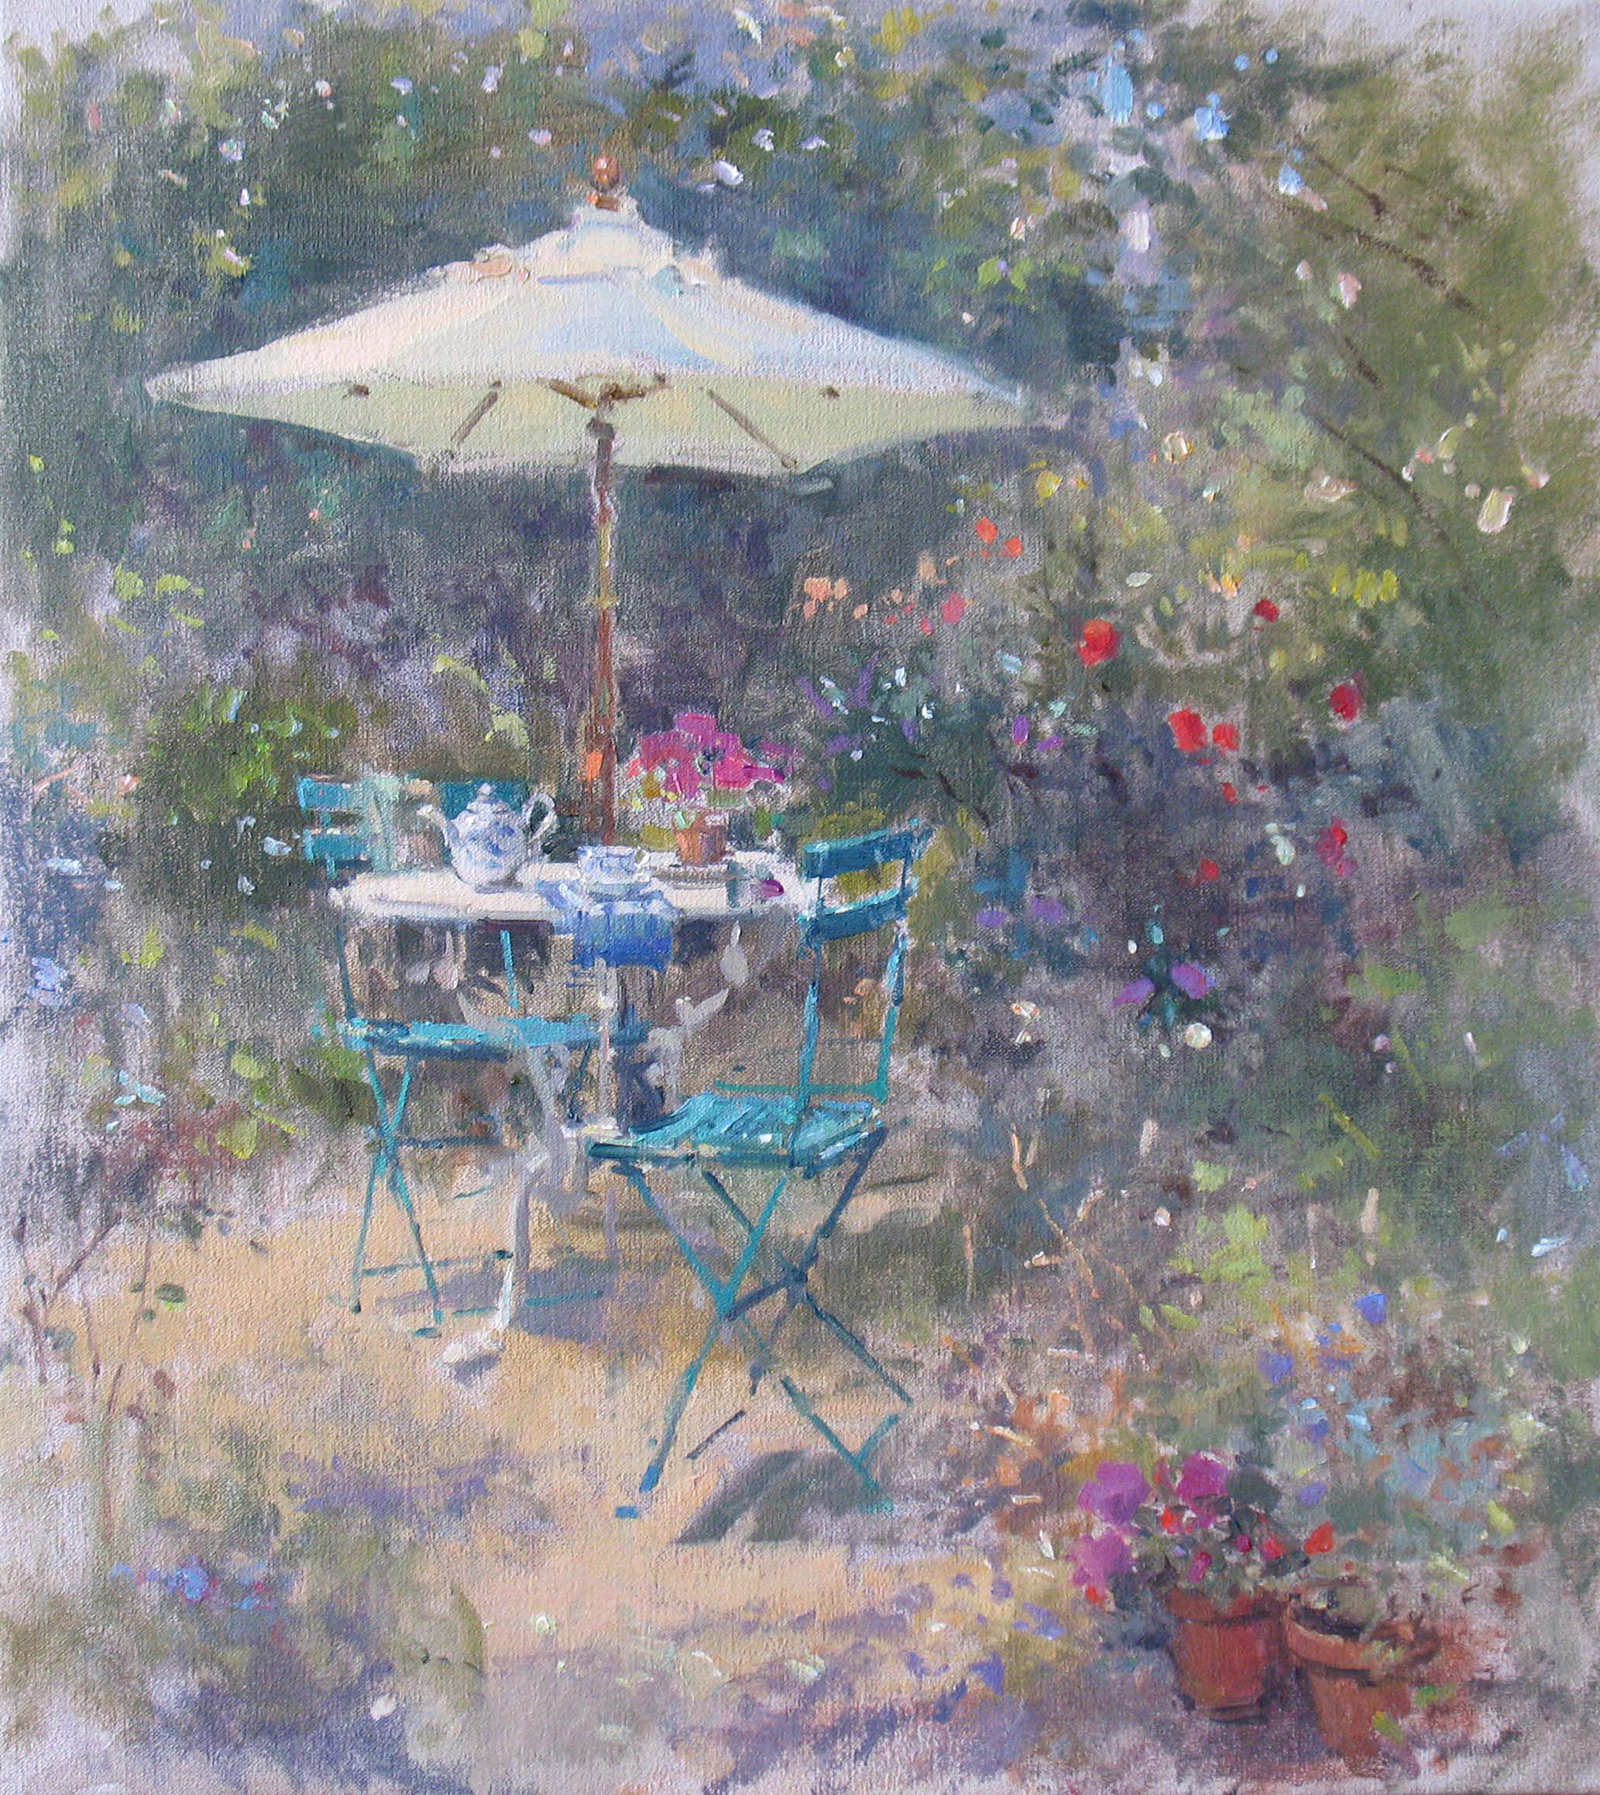 Garden-in-June-oil-on-canvas-22-x-20-